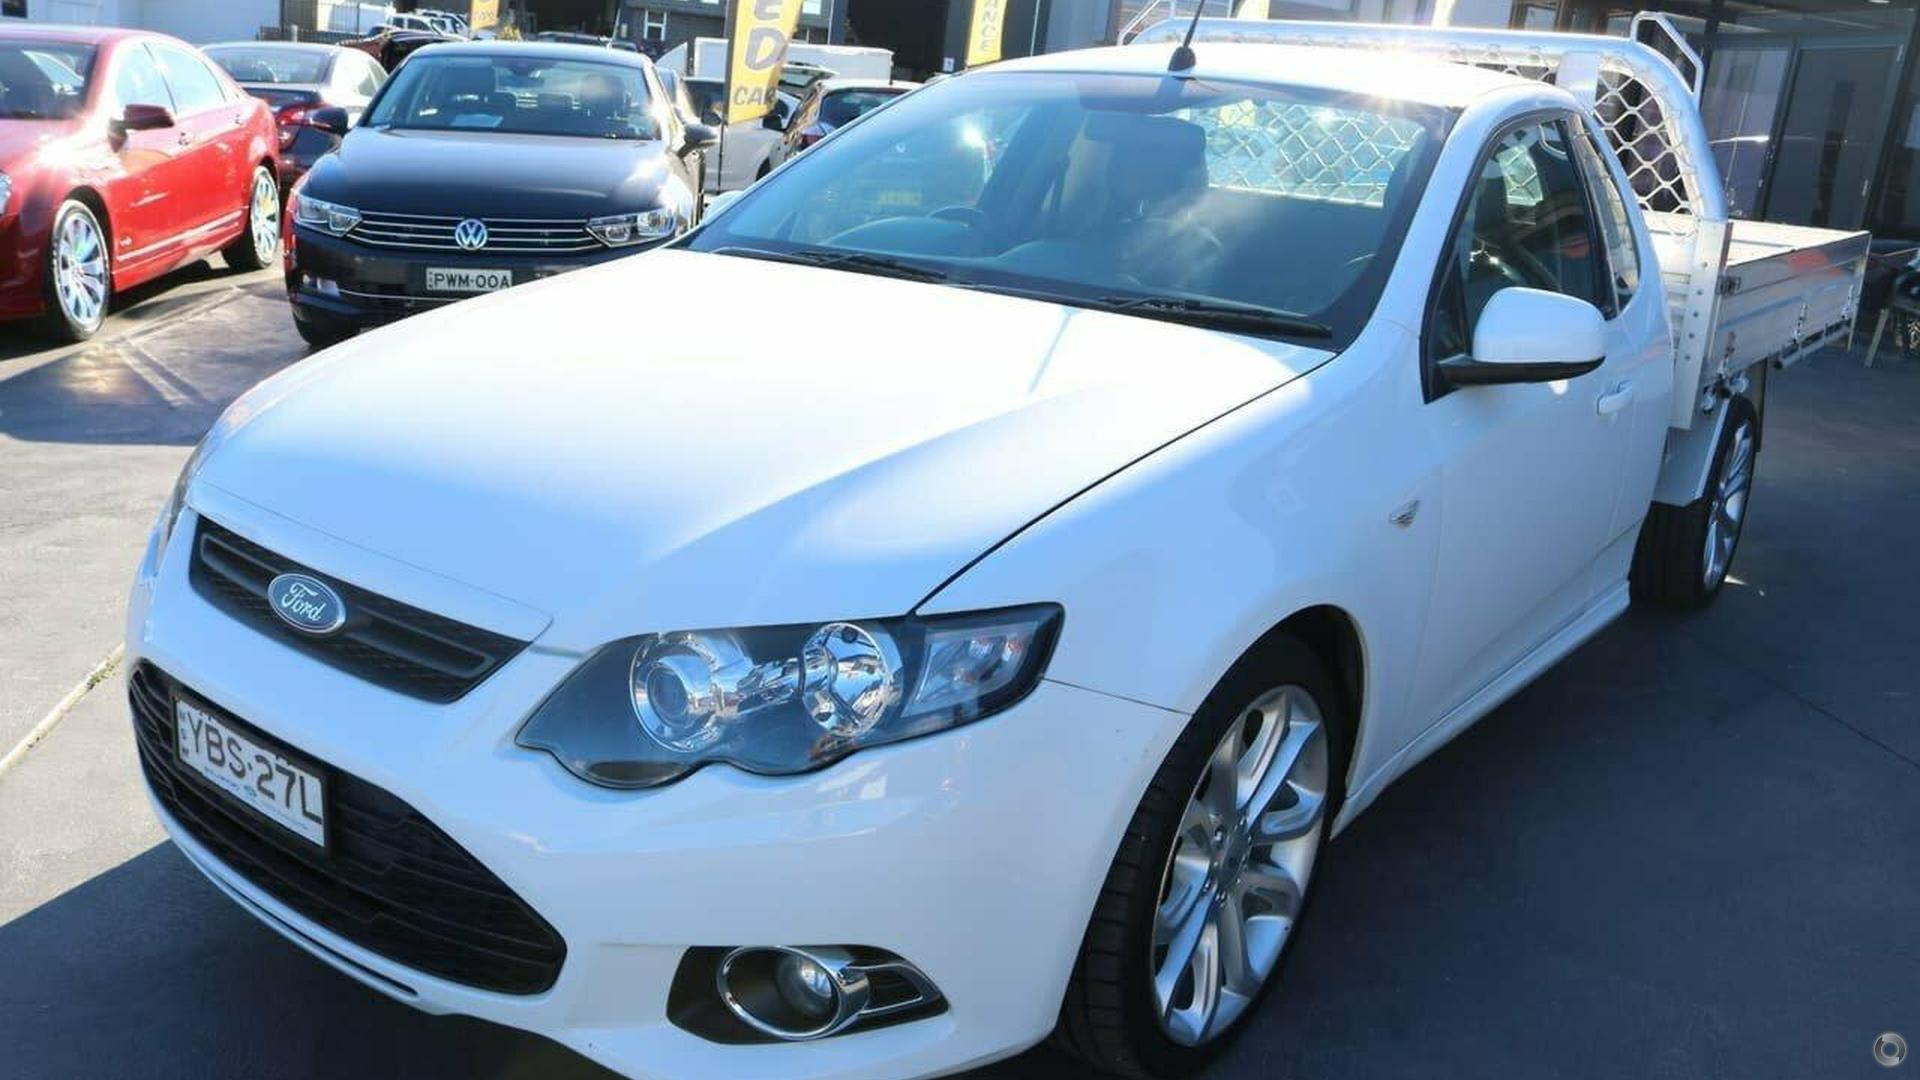 2014 Ford Falcon Ute XR6 Turbo FG MkII